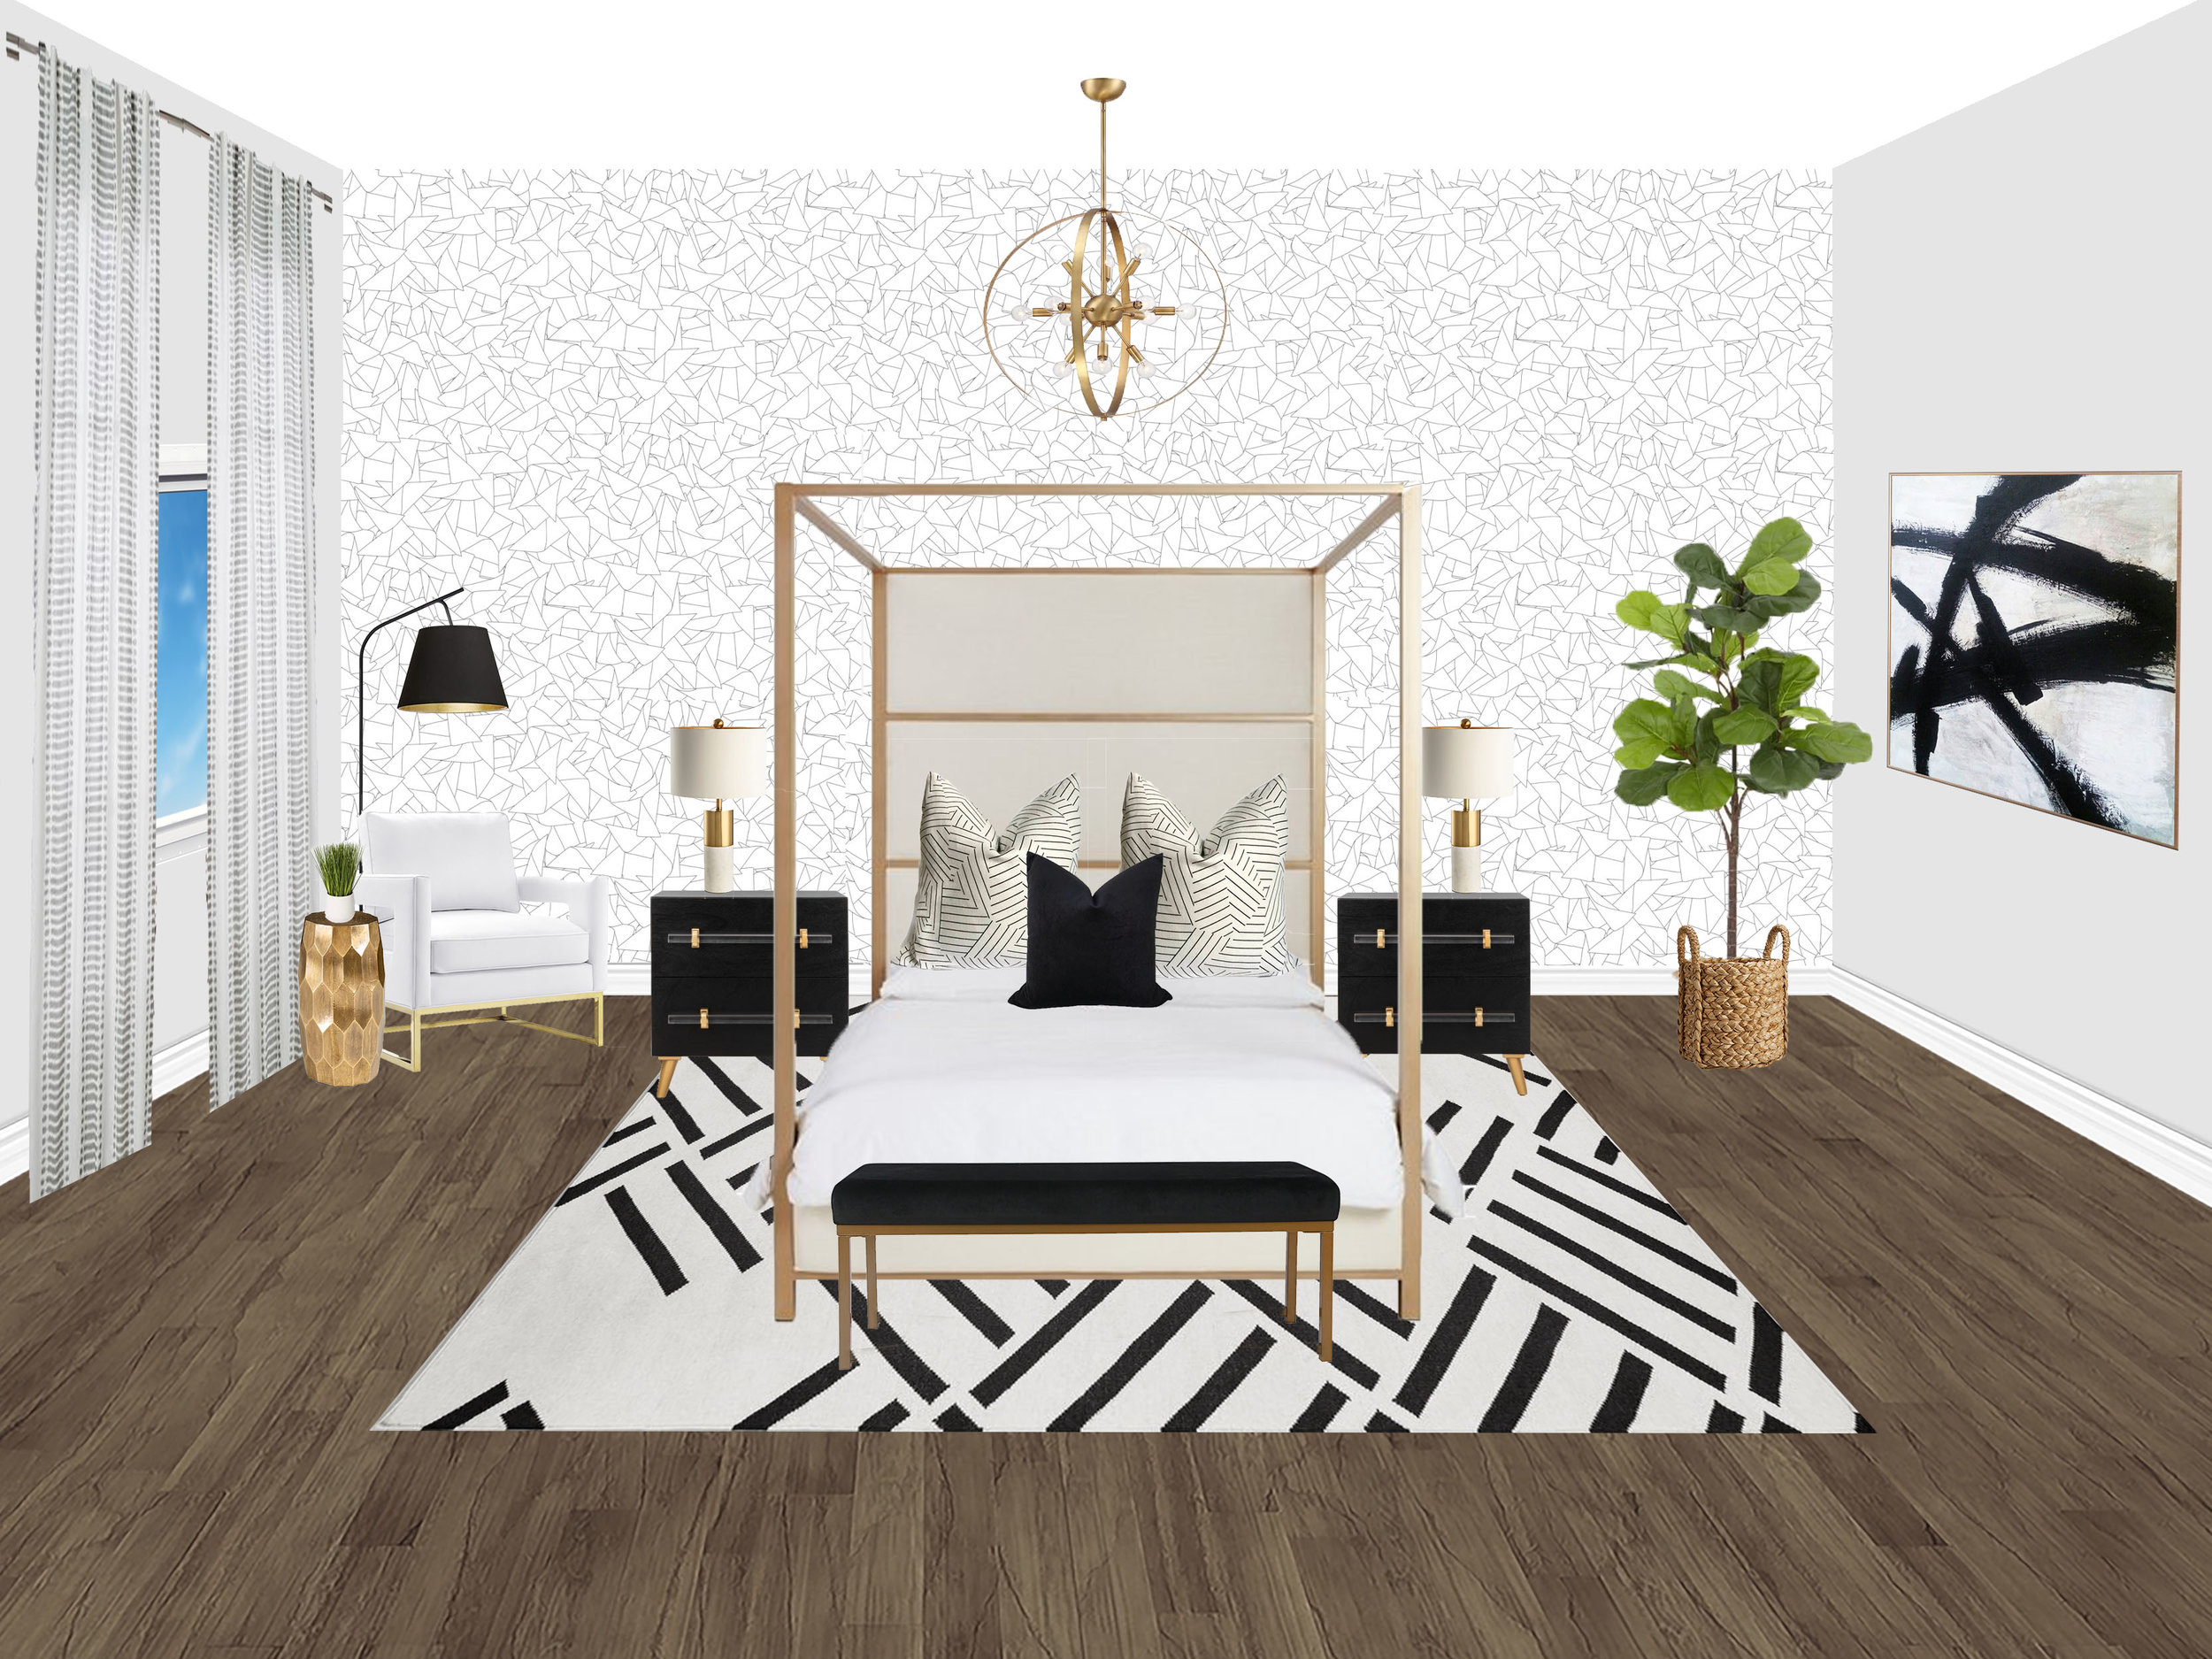 Whittaker Interiors E-Design Bedroom